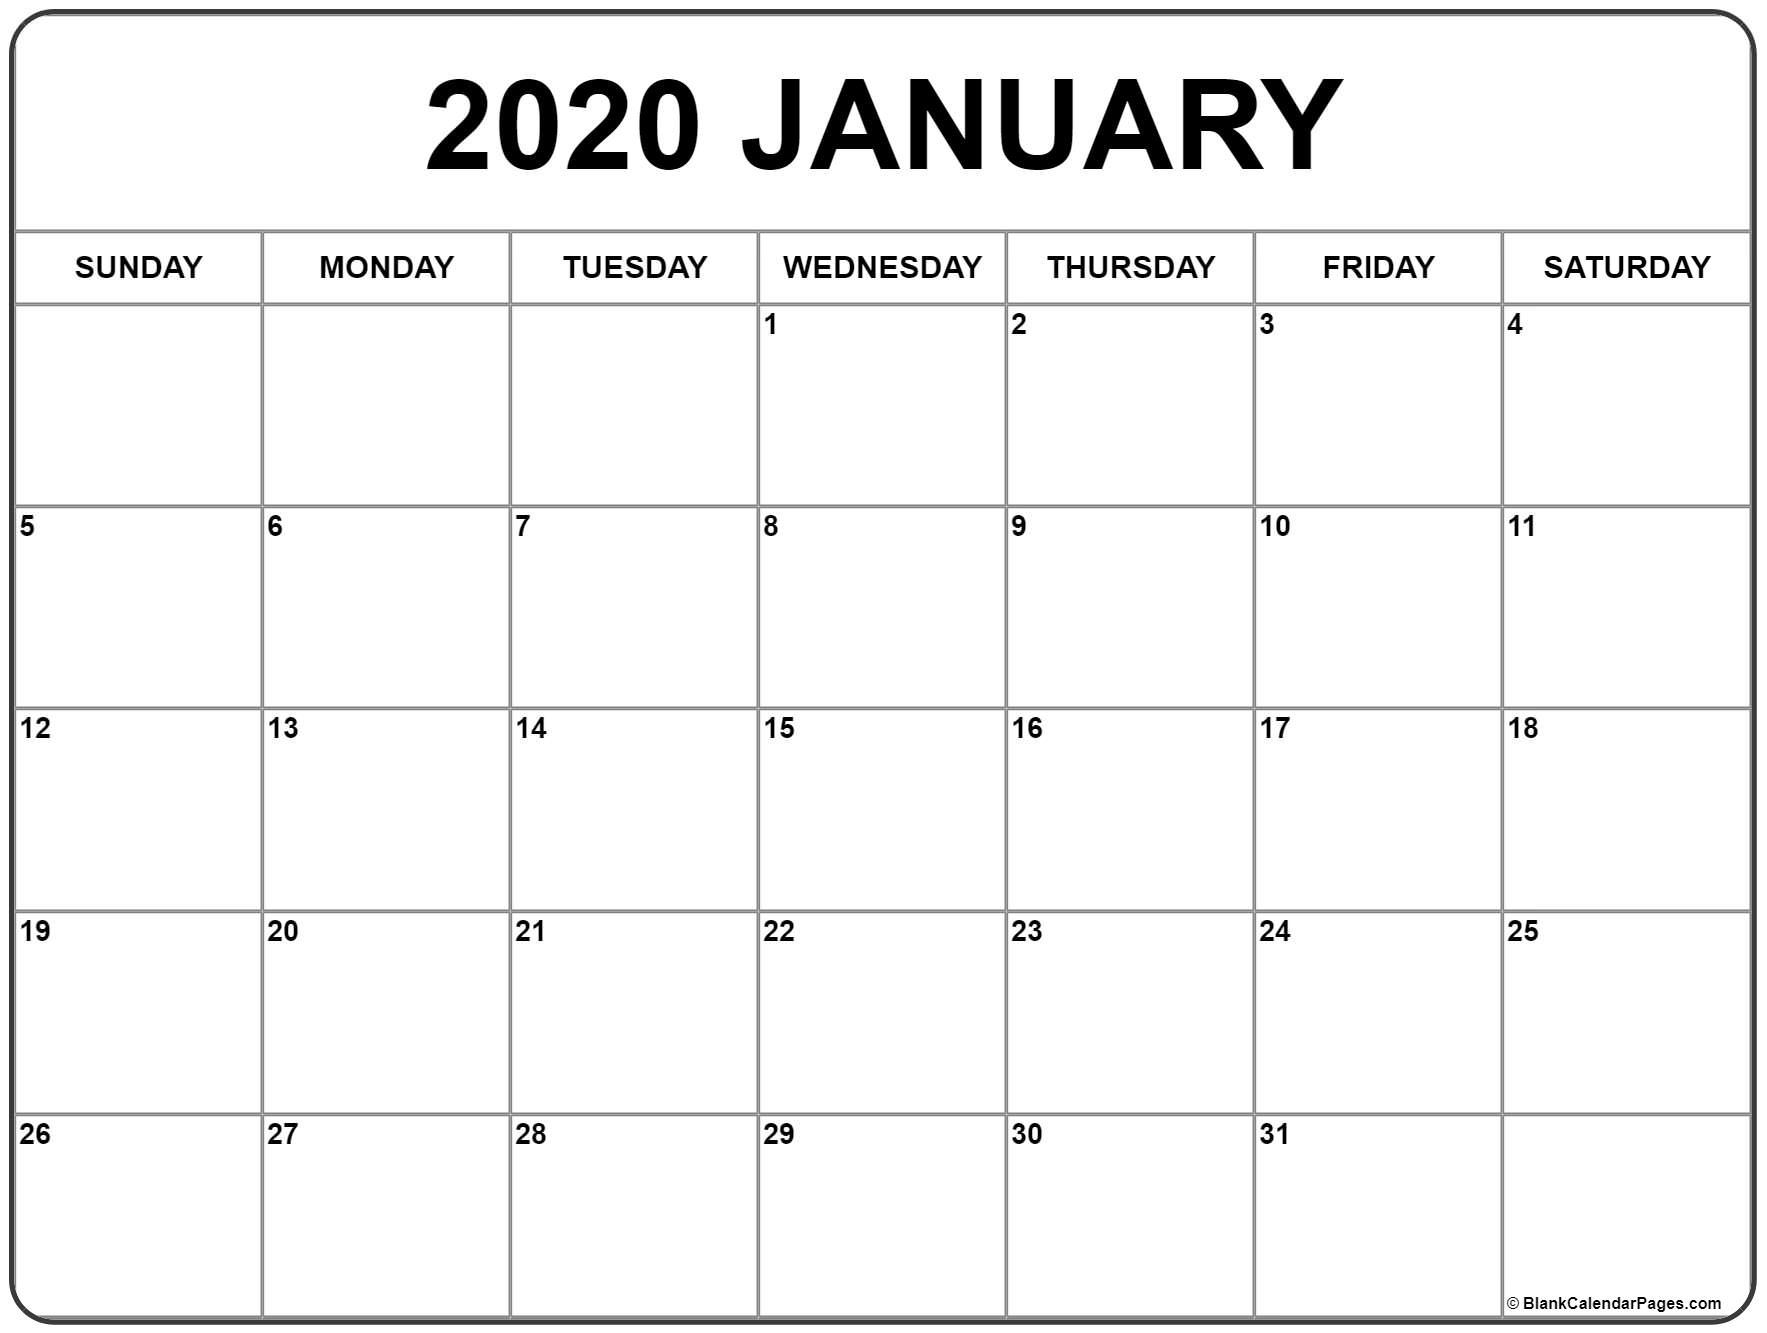 January 2020 Calendar | Free Printable Monthly Calendars throughout Downloadable 2020 Monthly Calendar Template Word